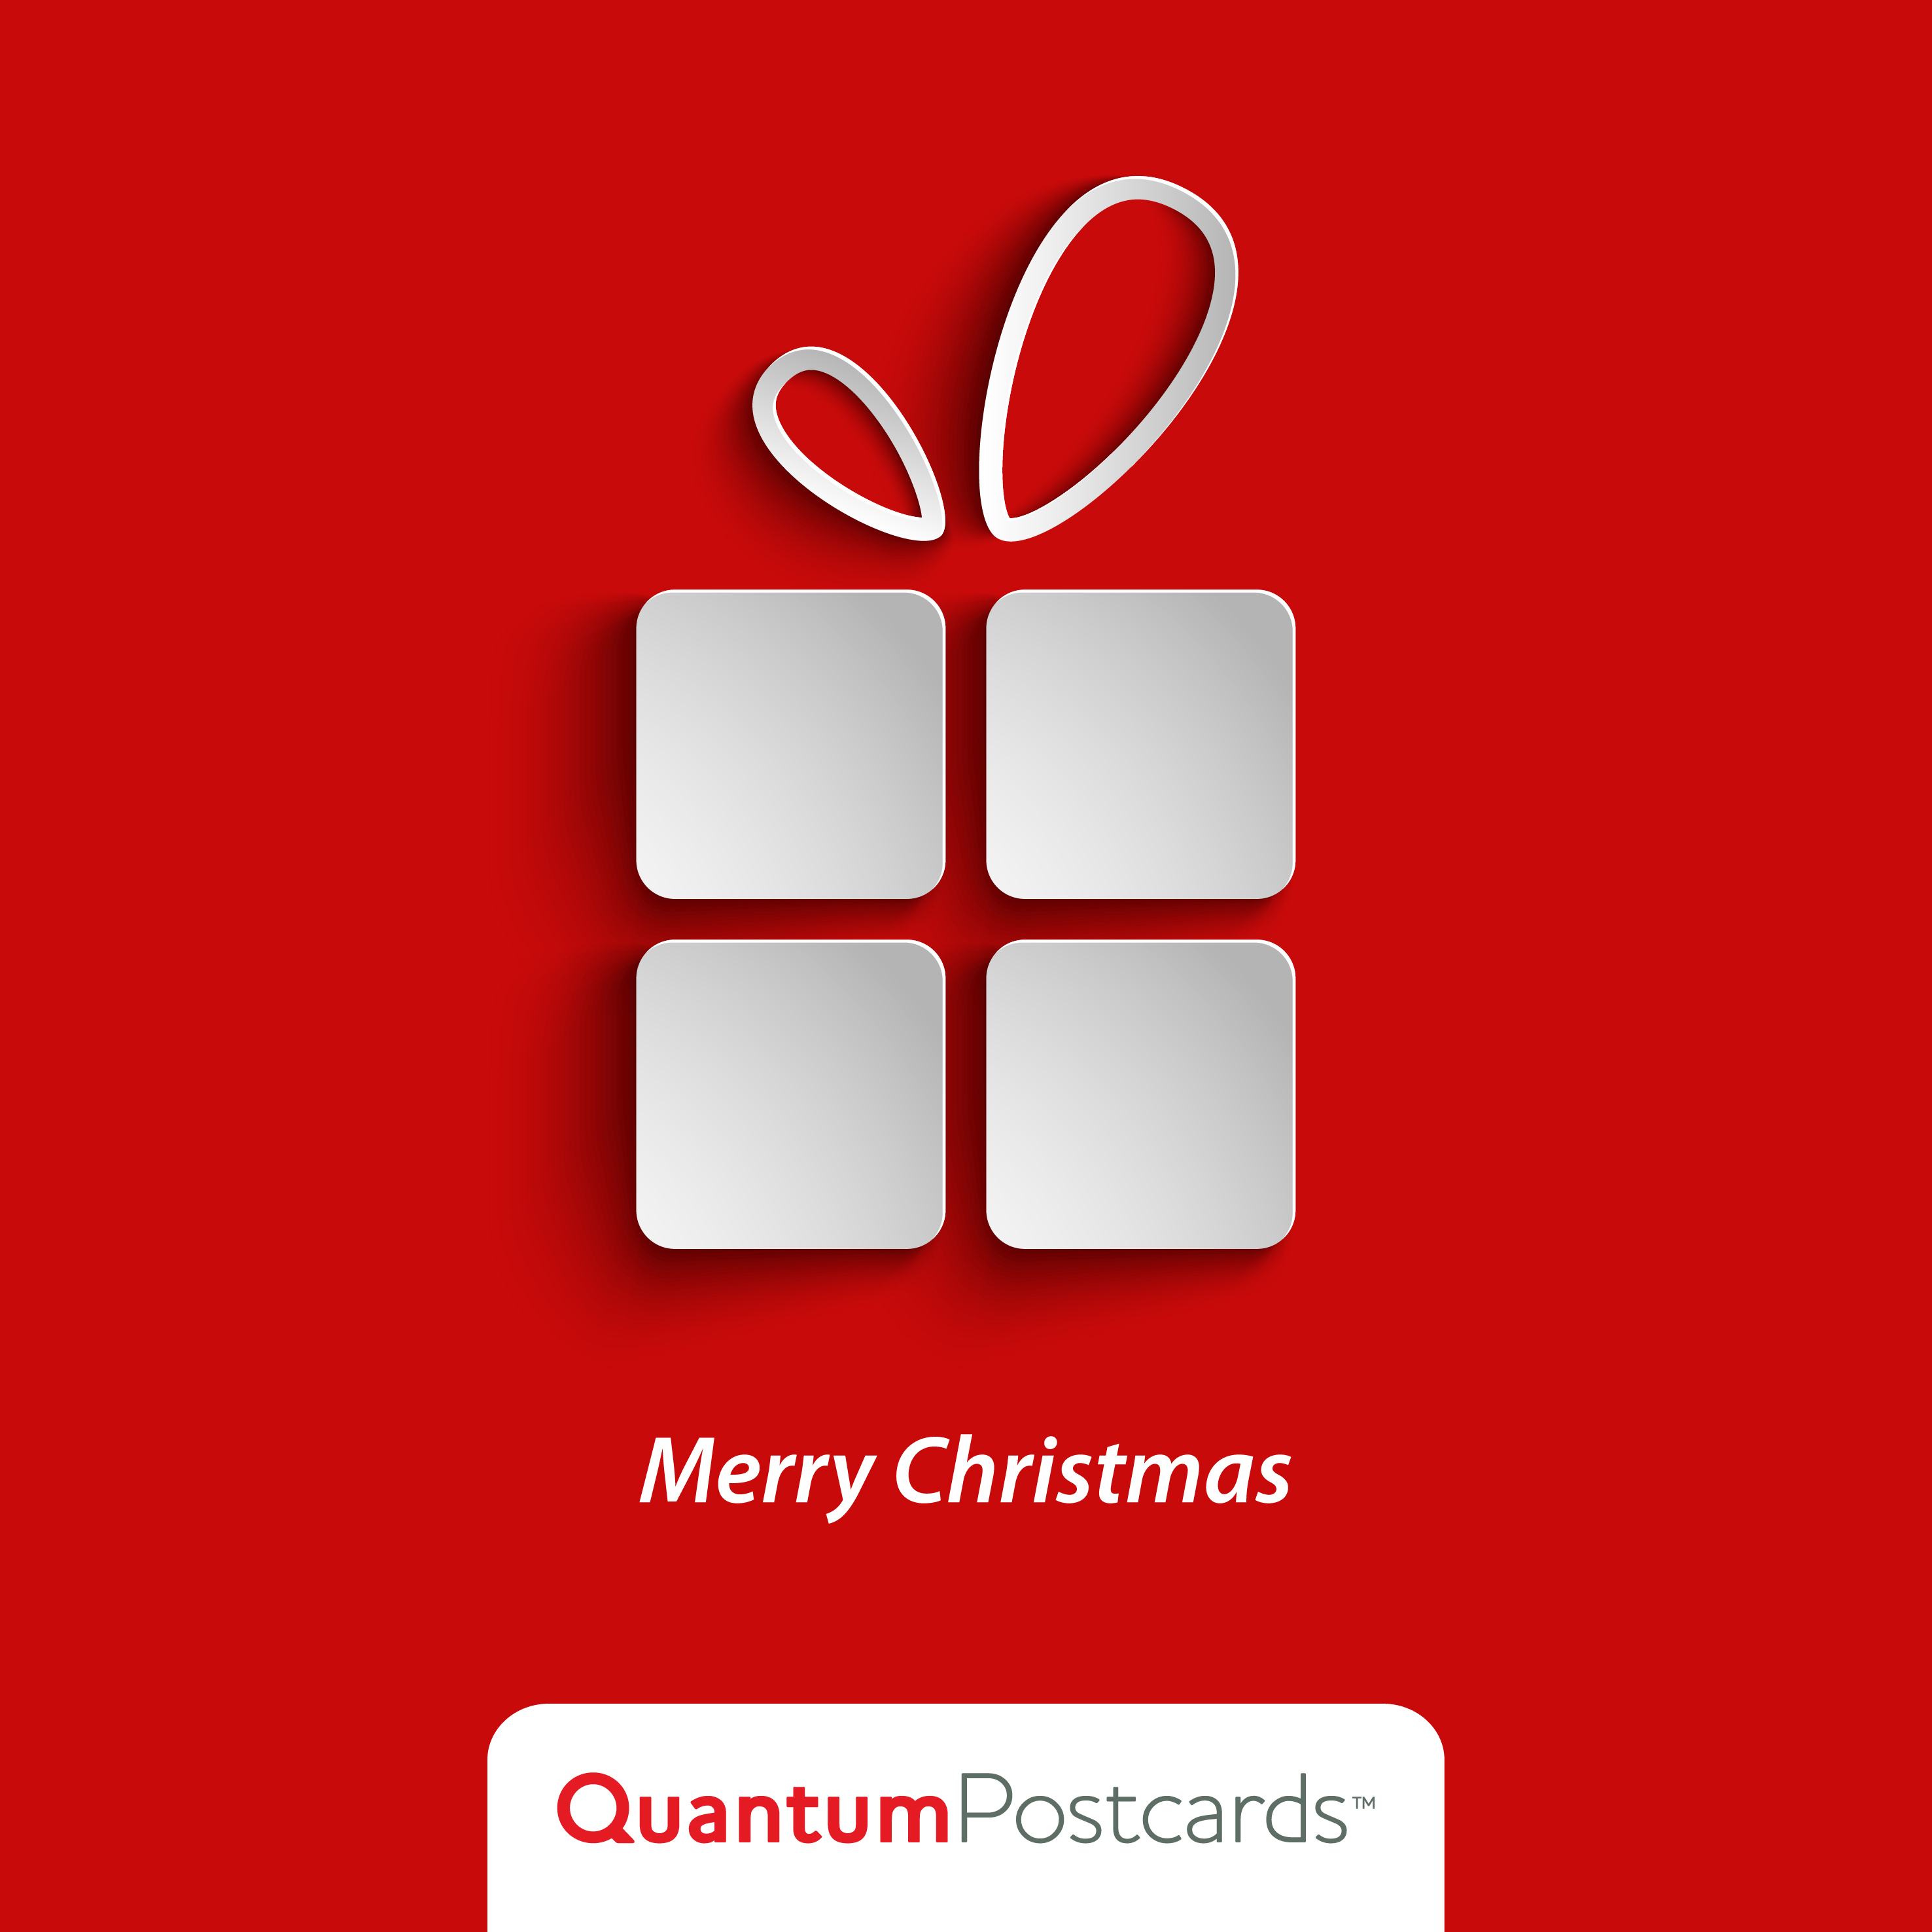 Merry Christmas from QuantumPostcards